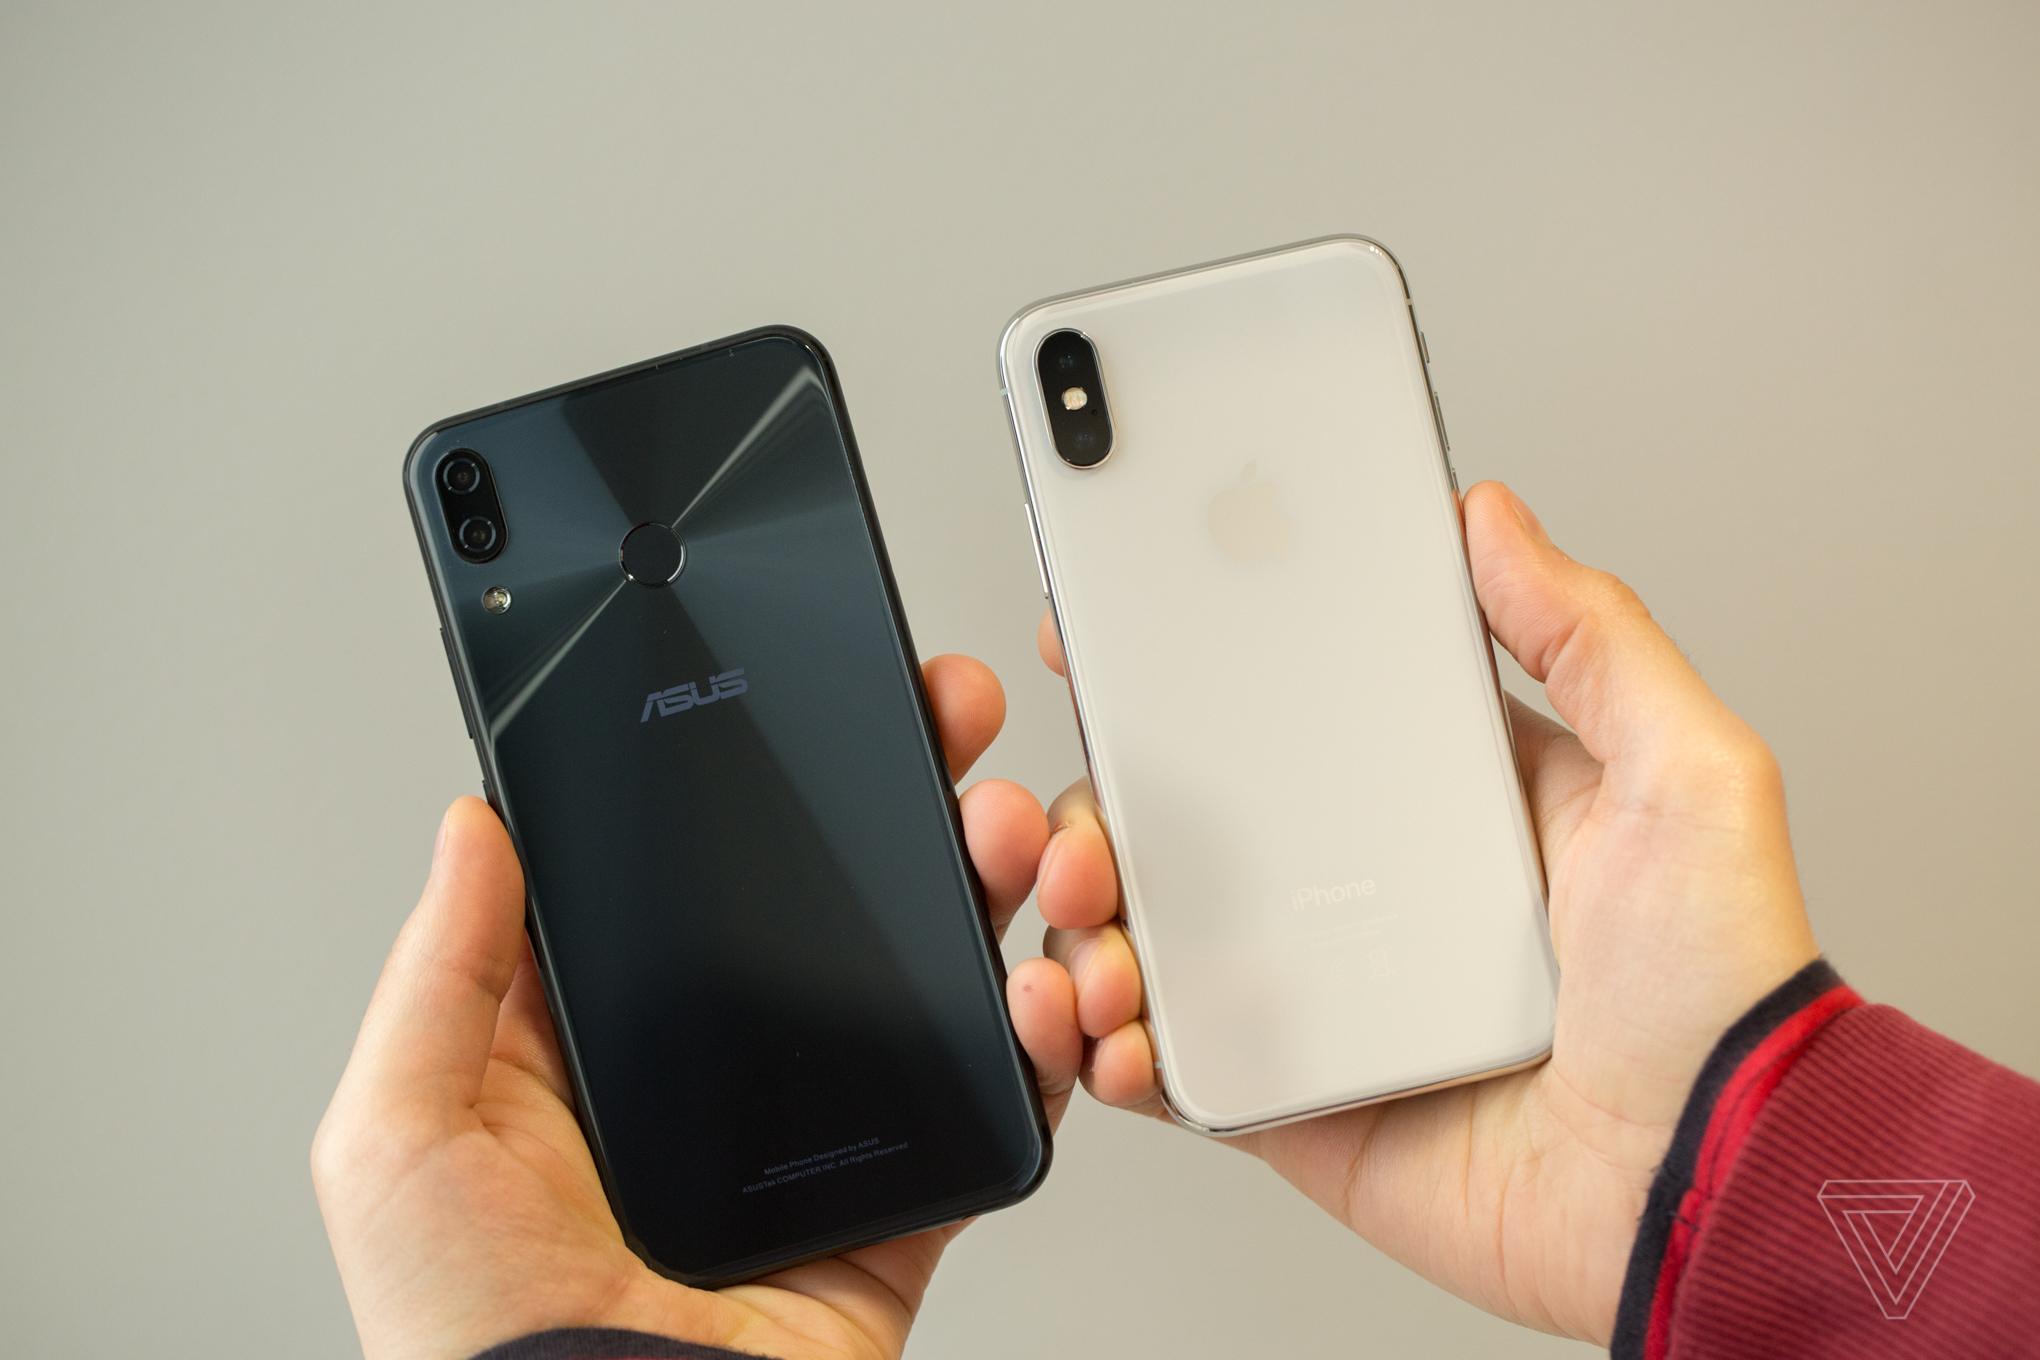 The Asus Zenfone 5 is an iPhone X clone with big speakers ...